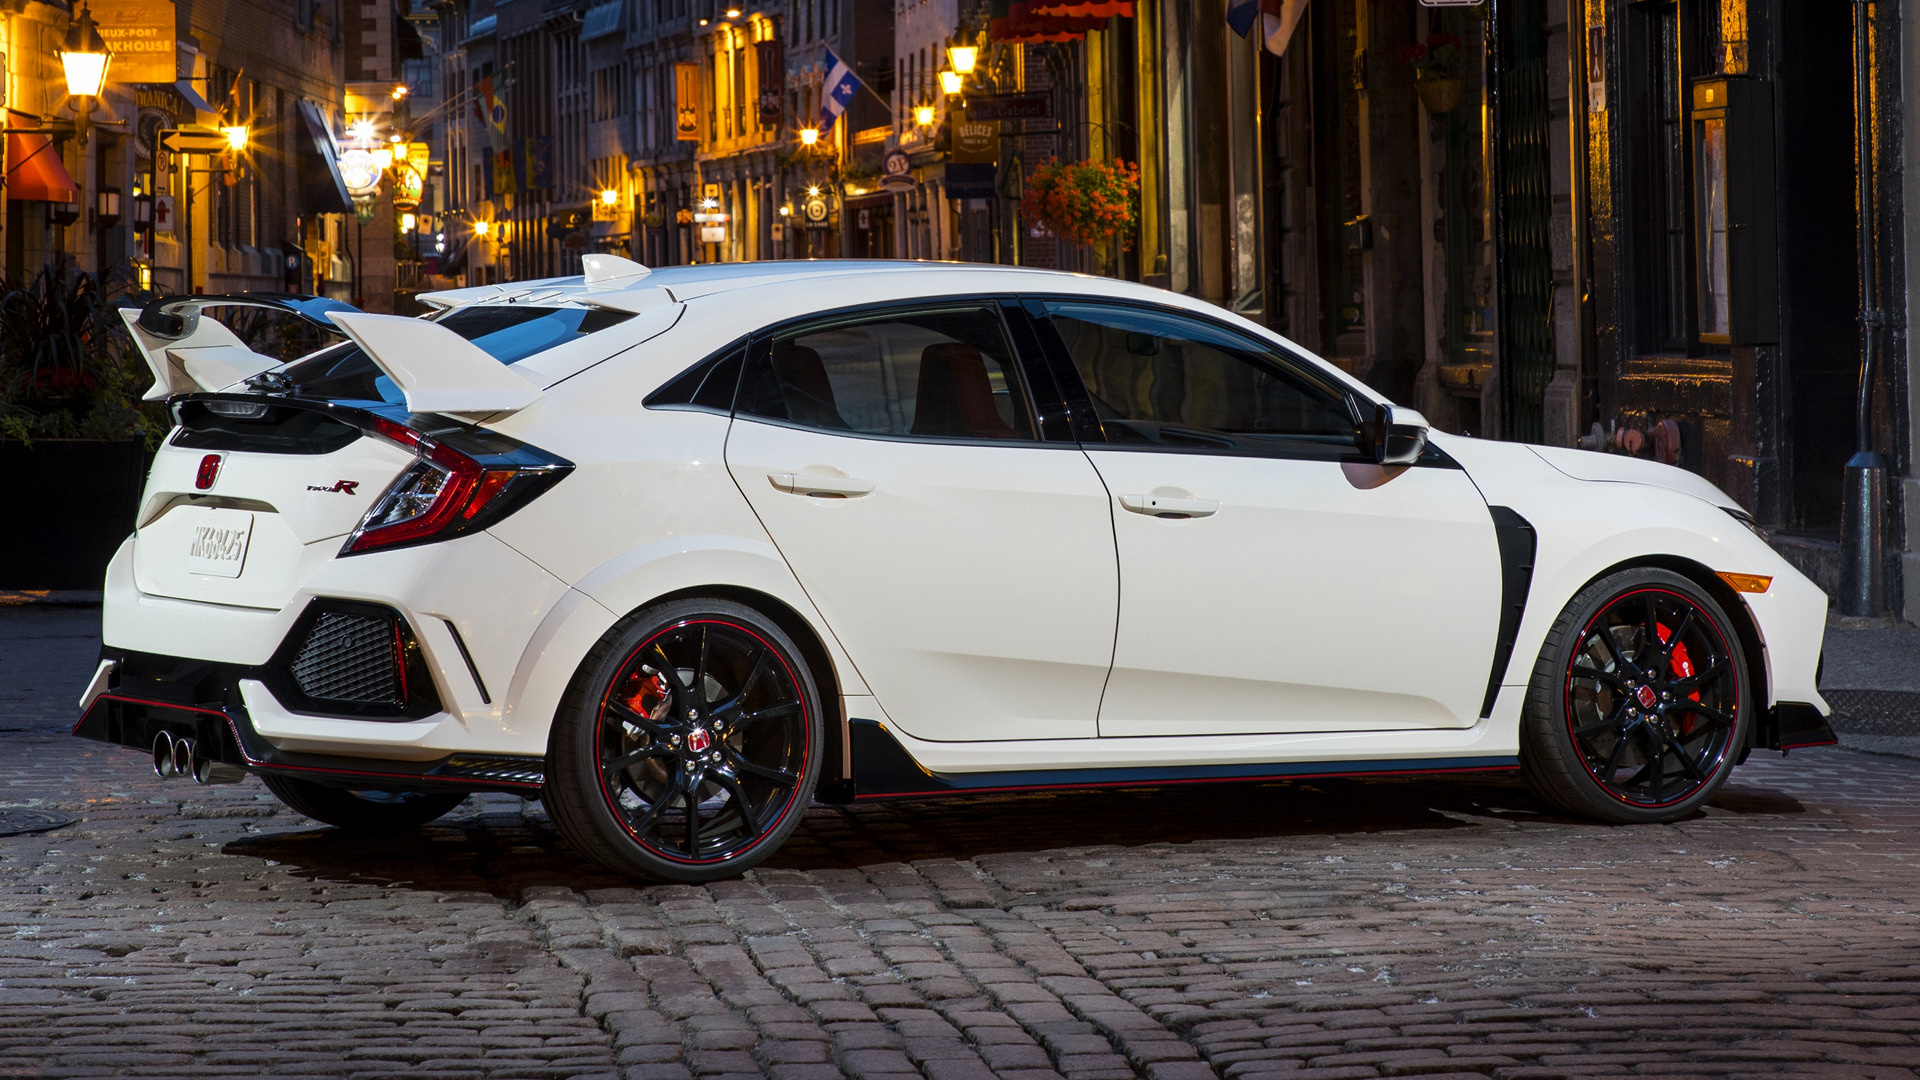 Honda Civic Type R Wallpaper Hd